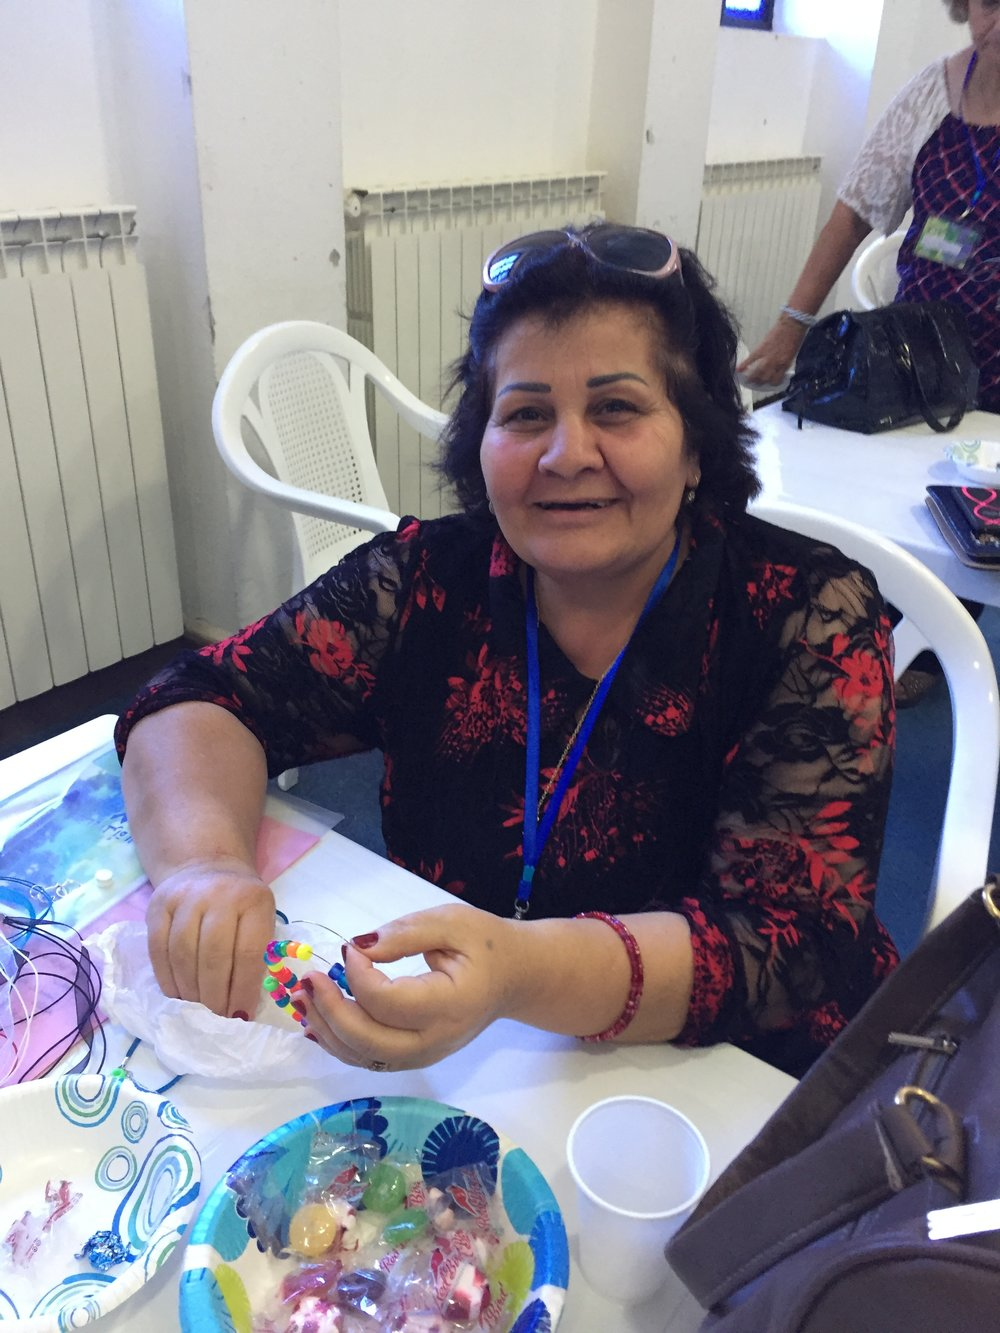 A happy bead maker shows her bracelet off.